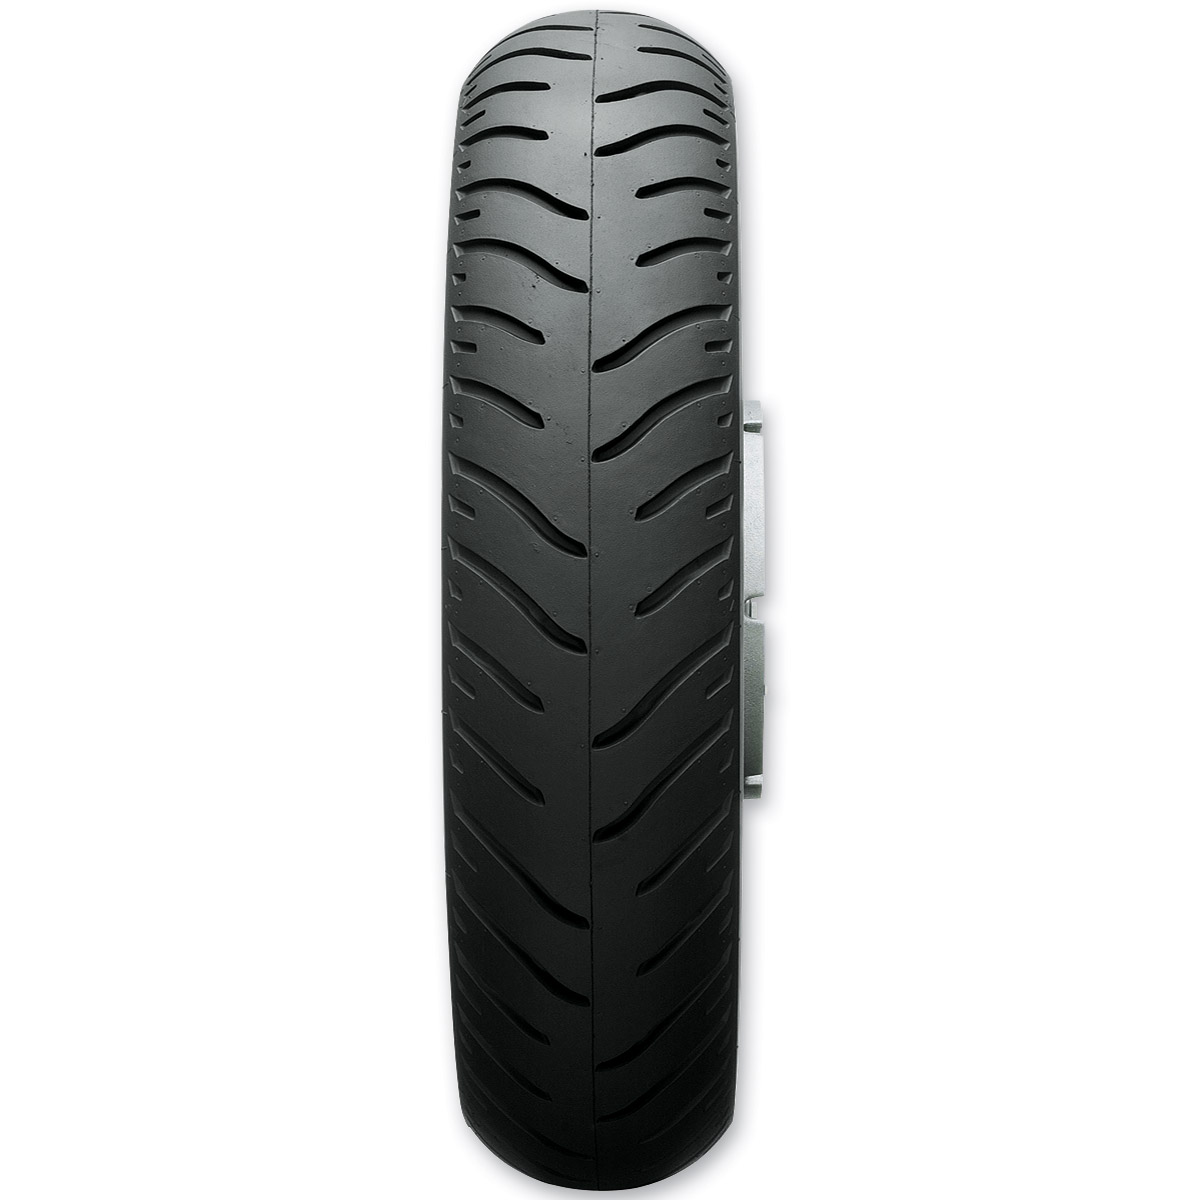 Dunlop Elite 3 MV85B15 Rear Tire